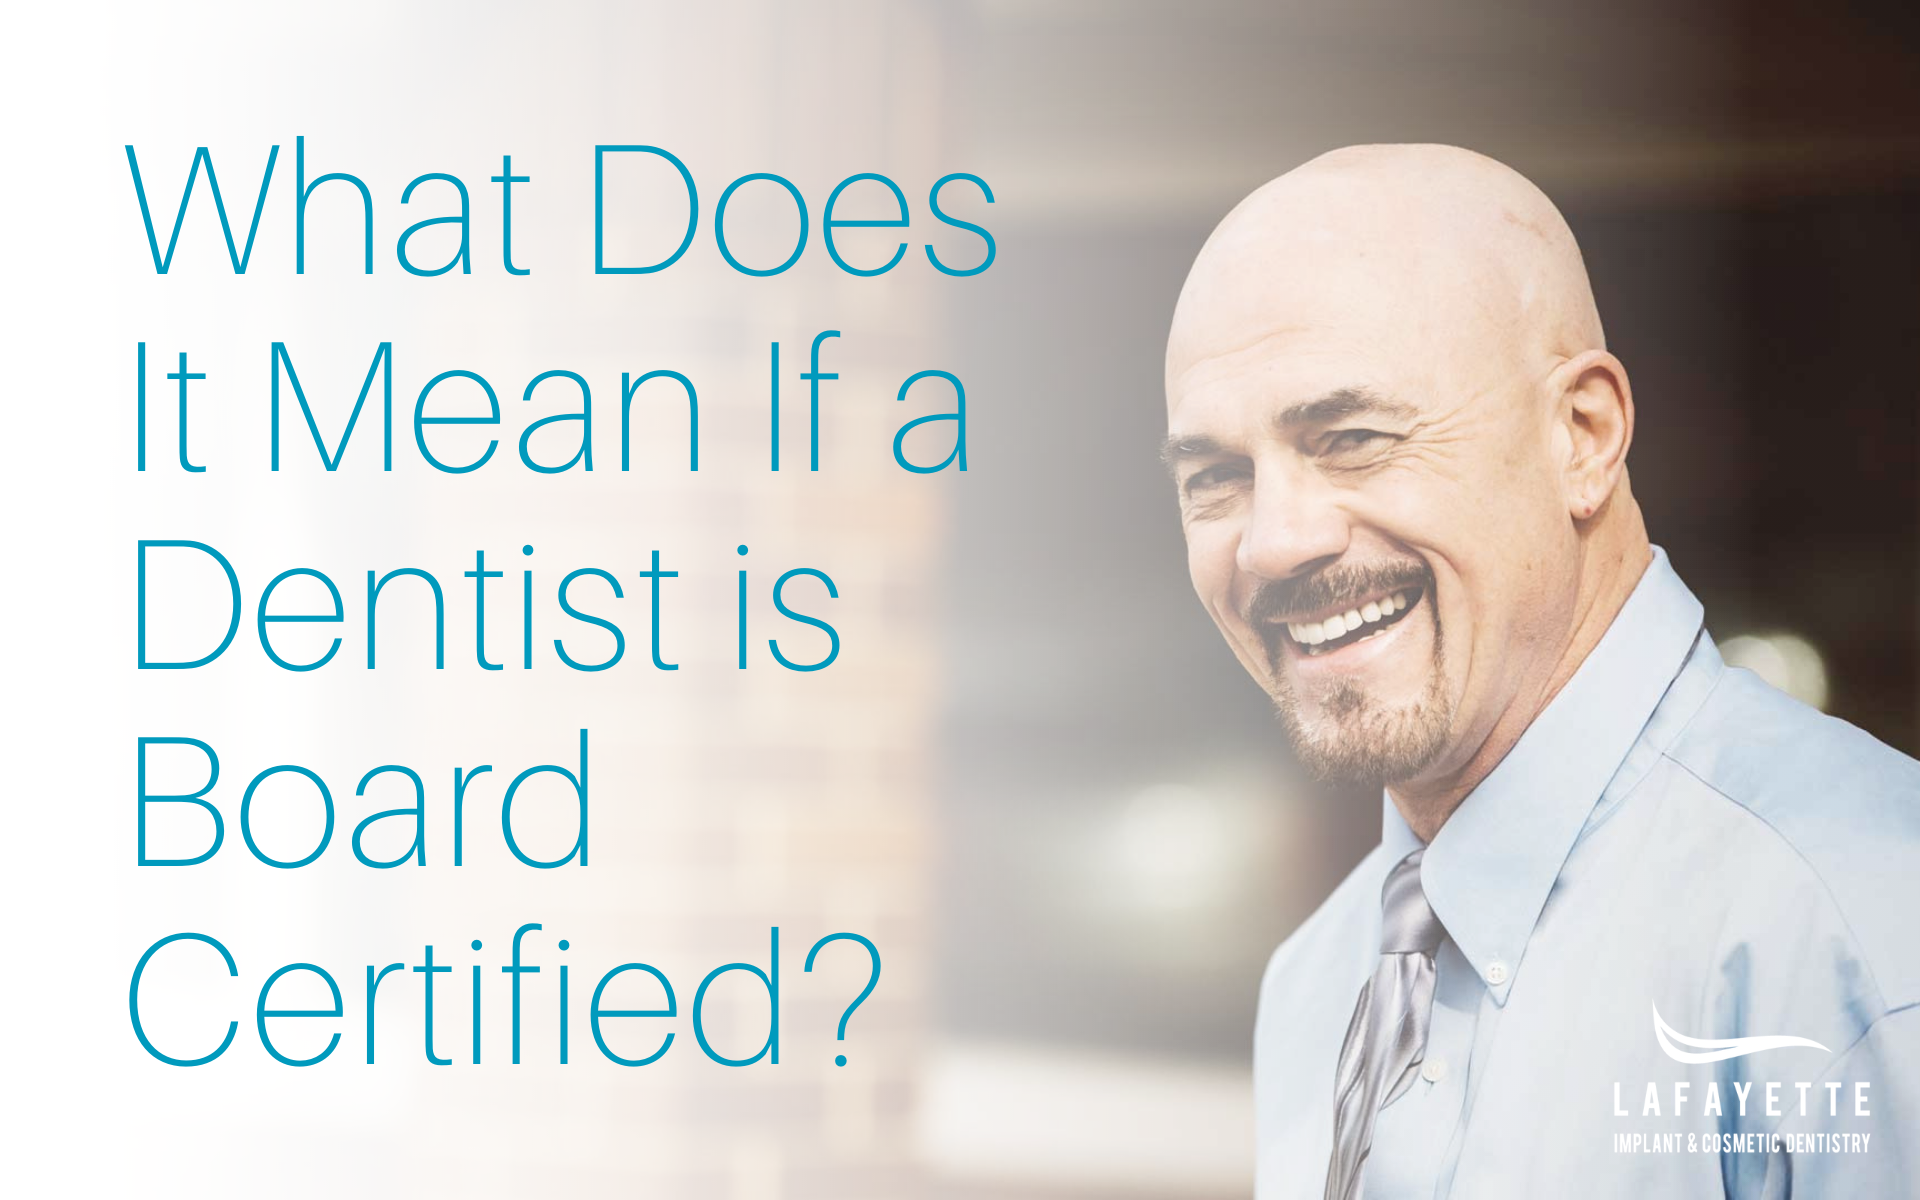 What Does It Mean If a Dentist is Board Certified?